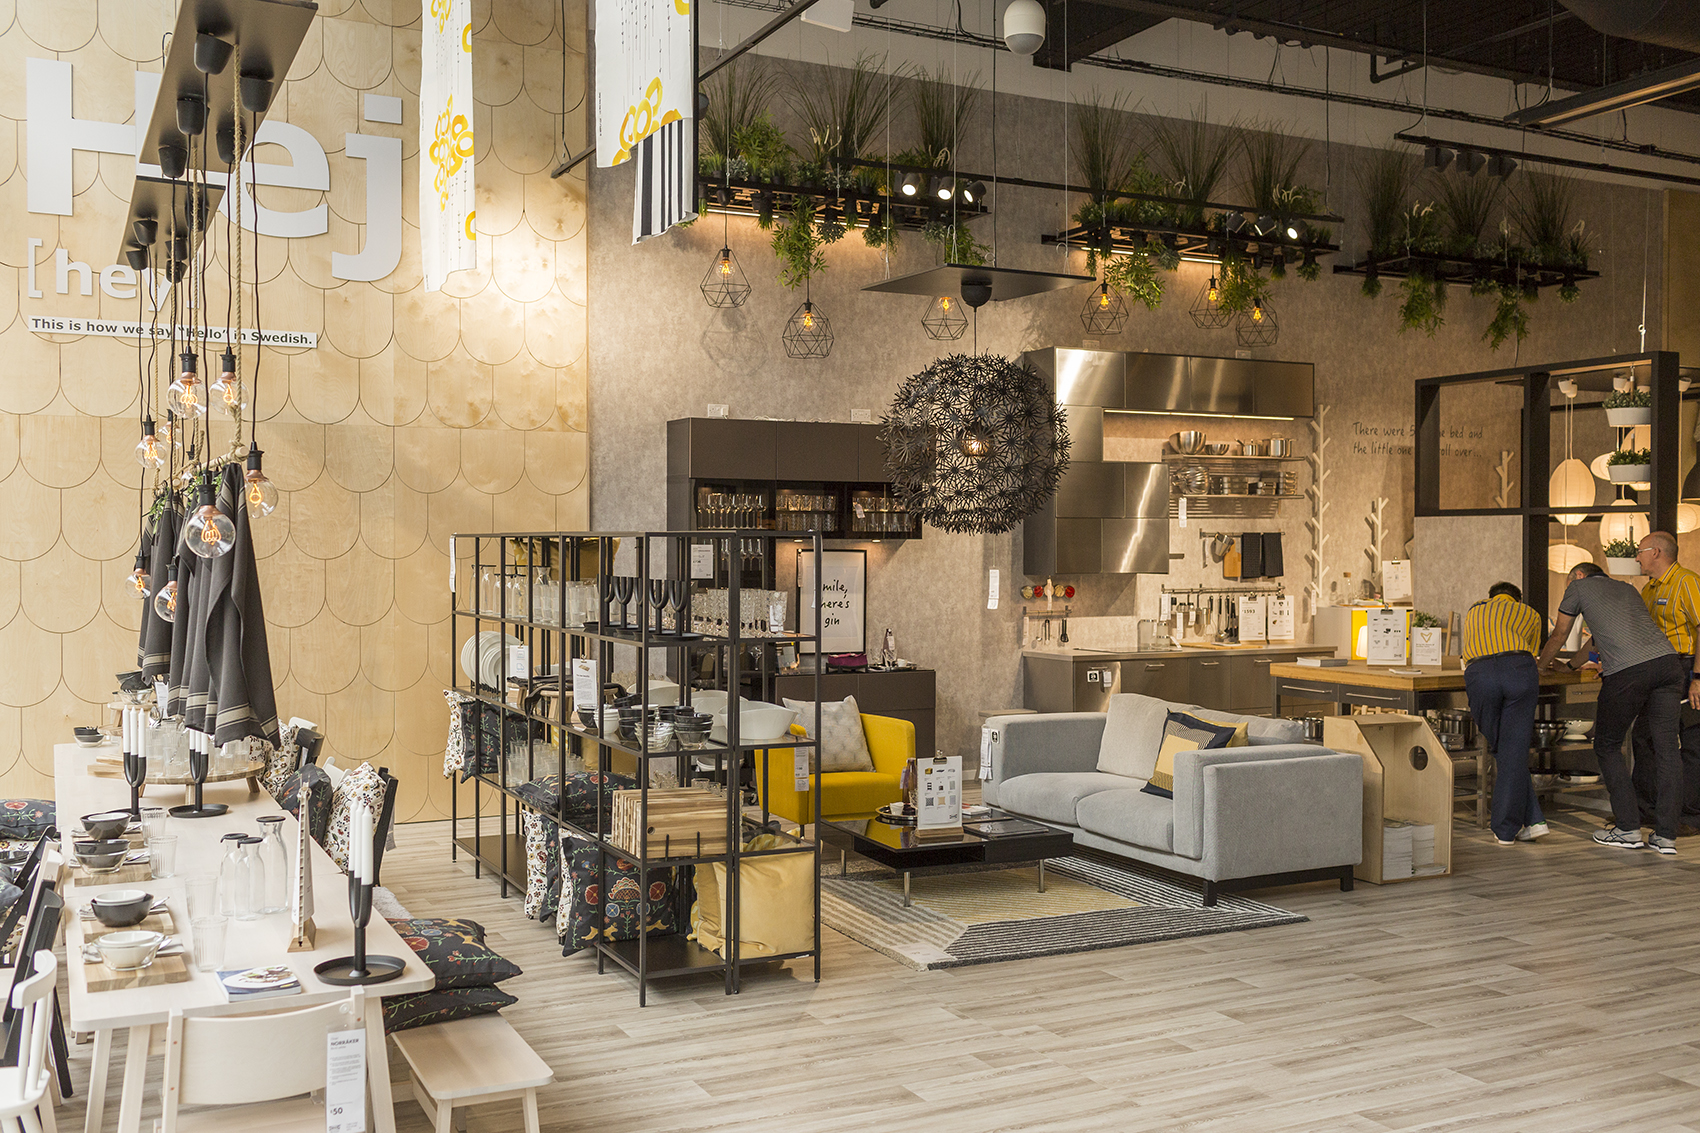 ikea rolls out convenience store concept in london. Black Bedroom Furniture Sets. Home Design Ideas